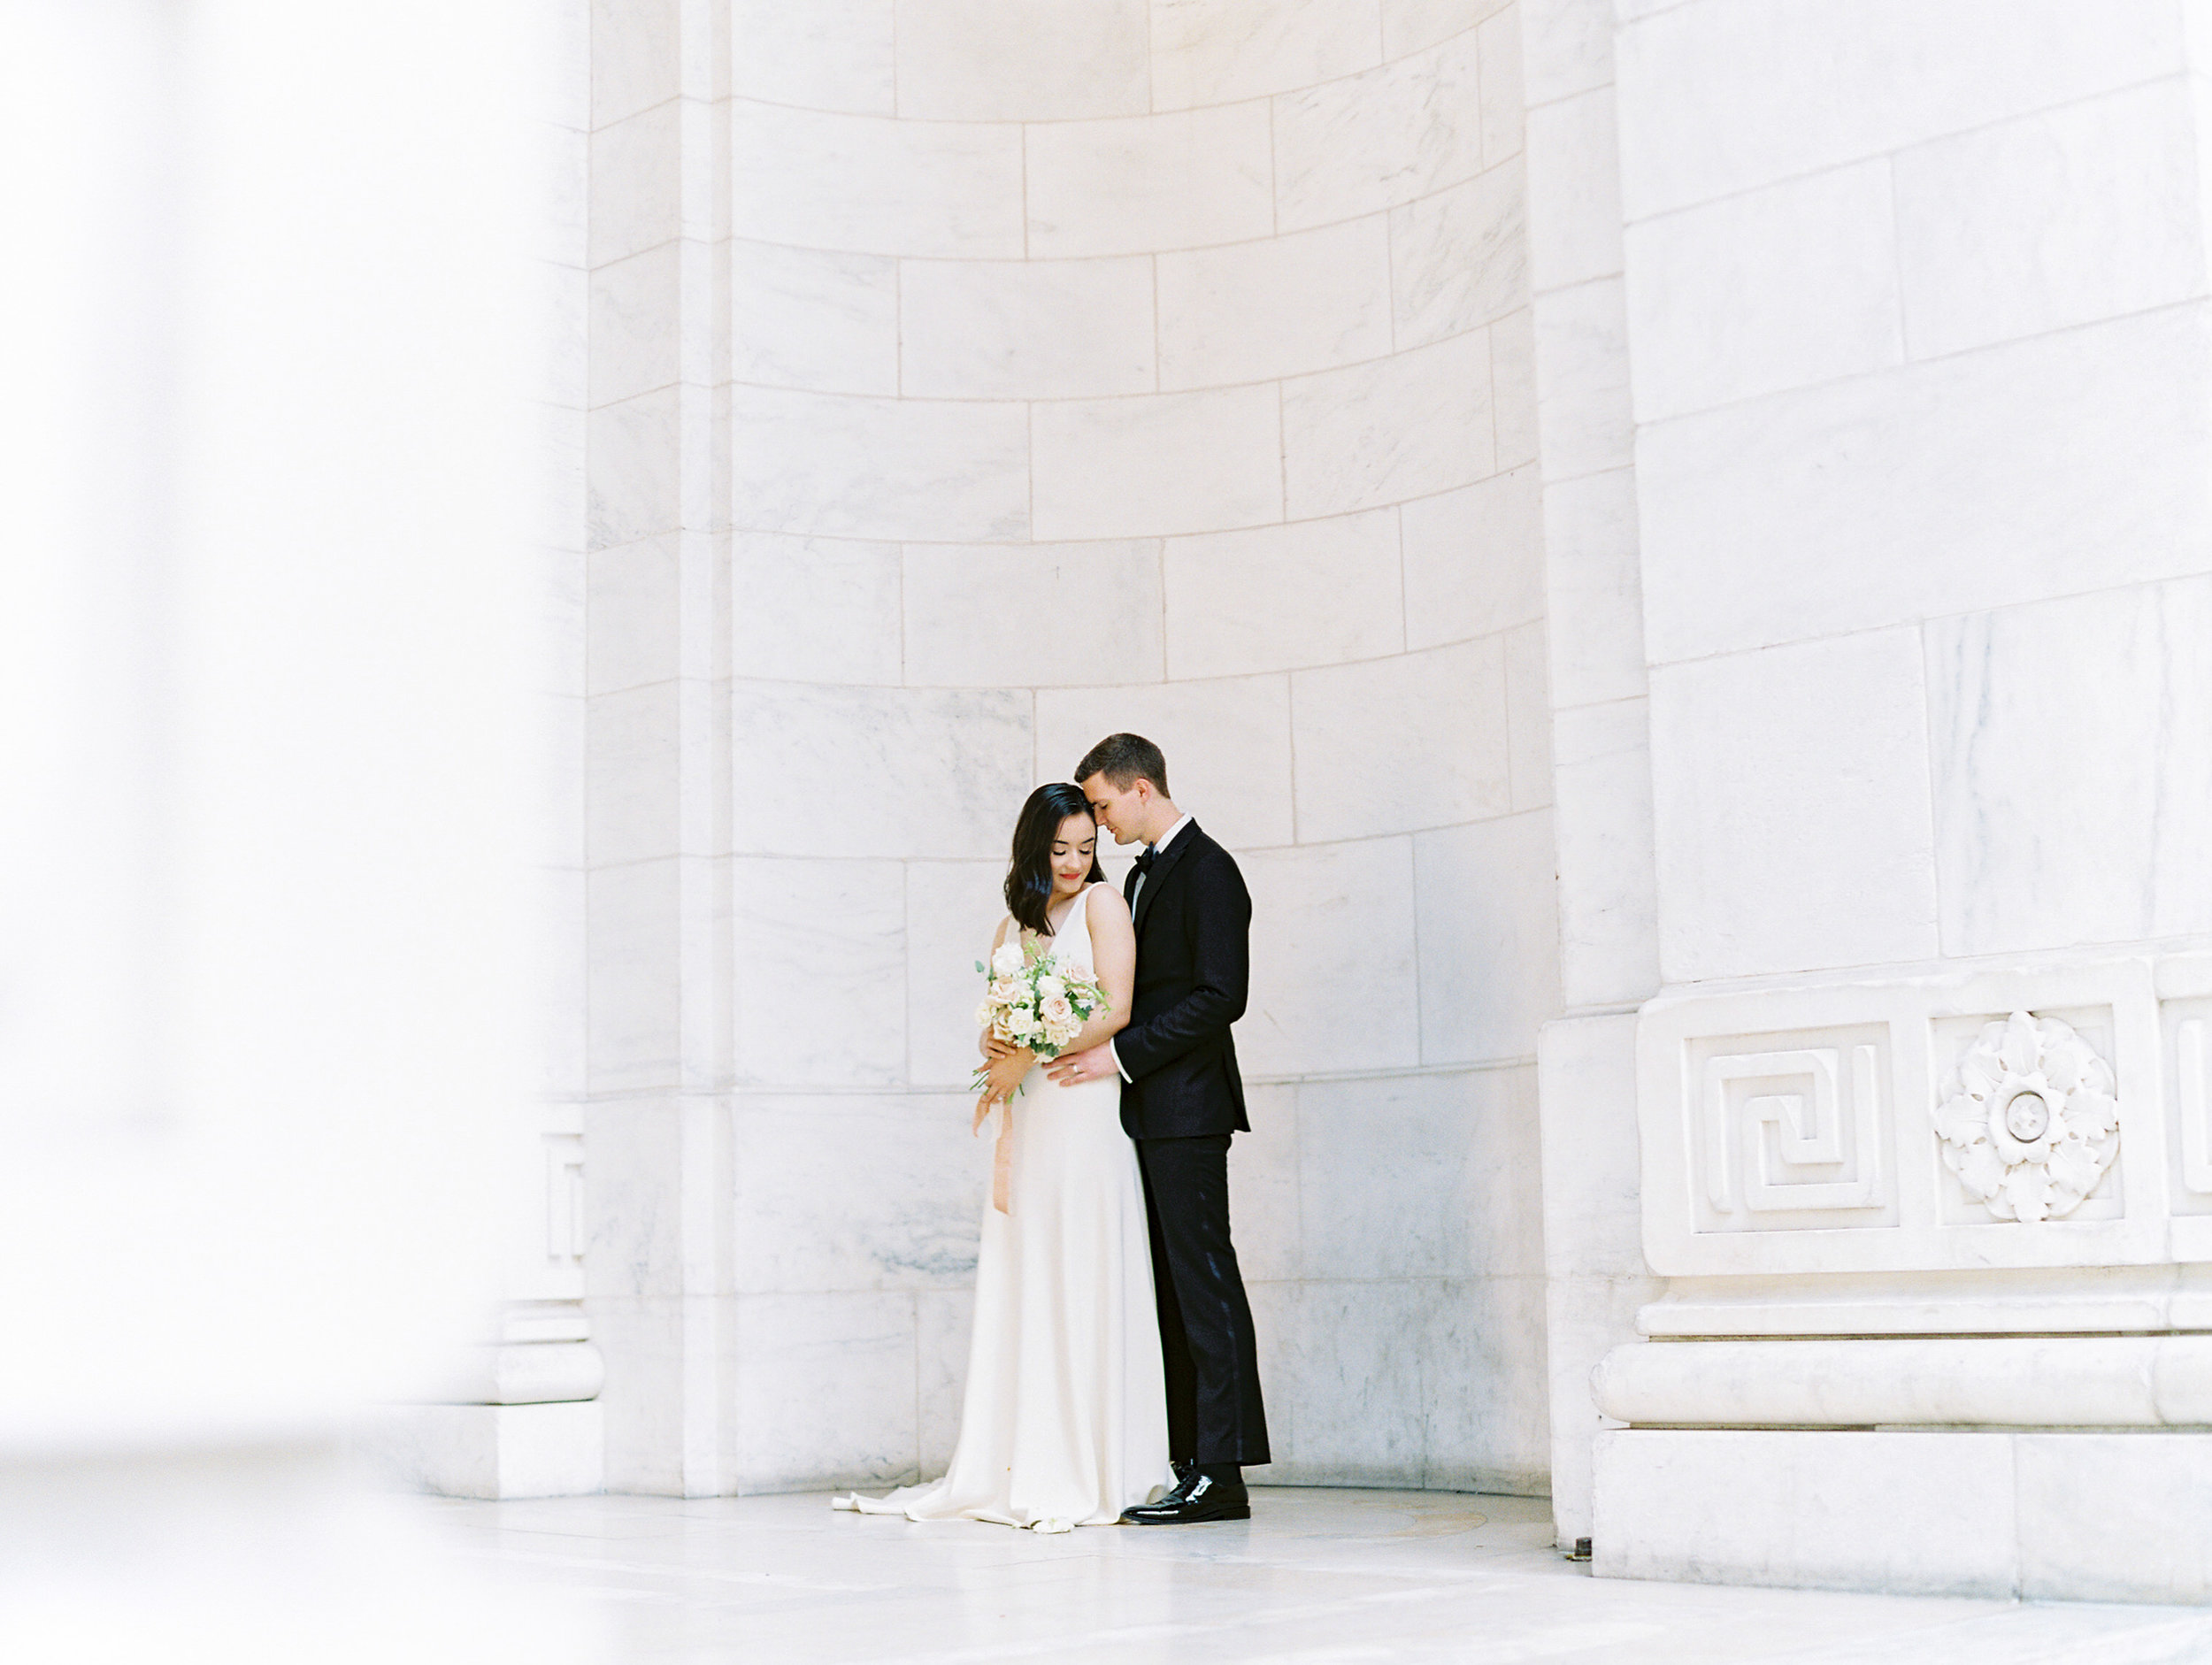 New York City Wedding Photographers | NYC Fine Art Wedding Photographer | New York, Paris, France, Italy, San Francisco, New York,Austin, Houston, Dallas, Napa, Charleston, Colorado, Vail, Denver21.jpg